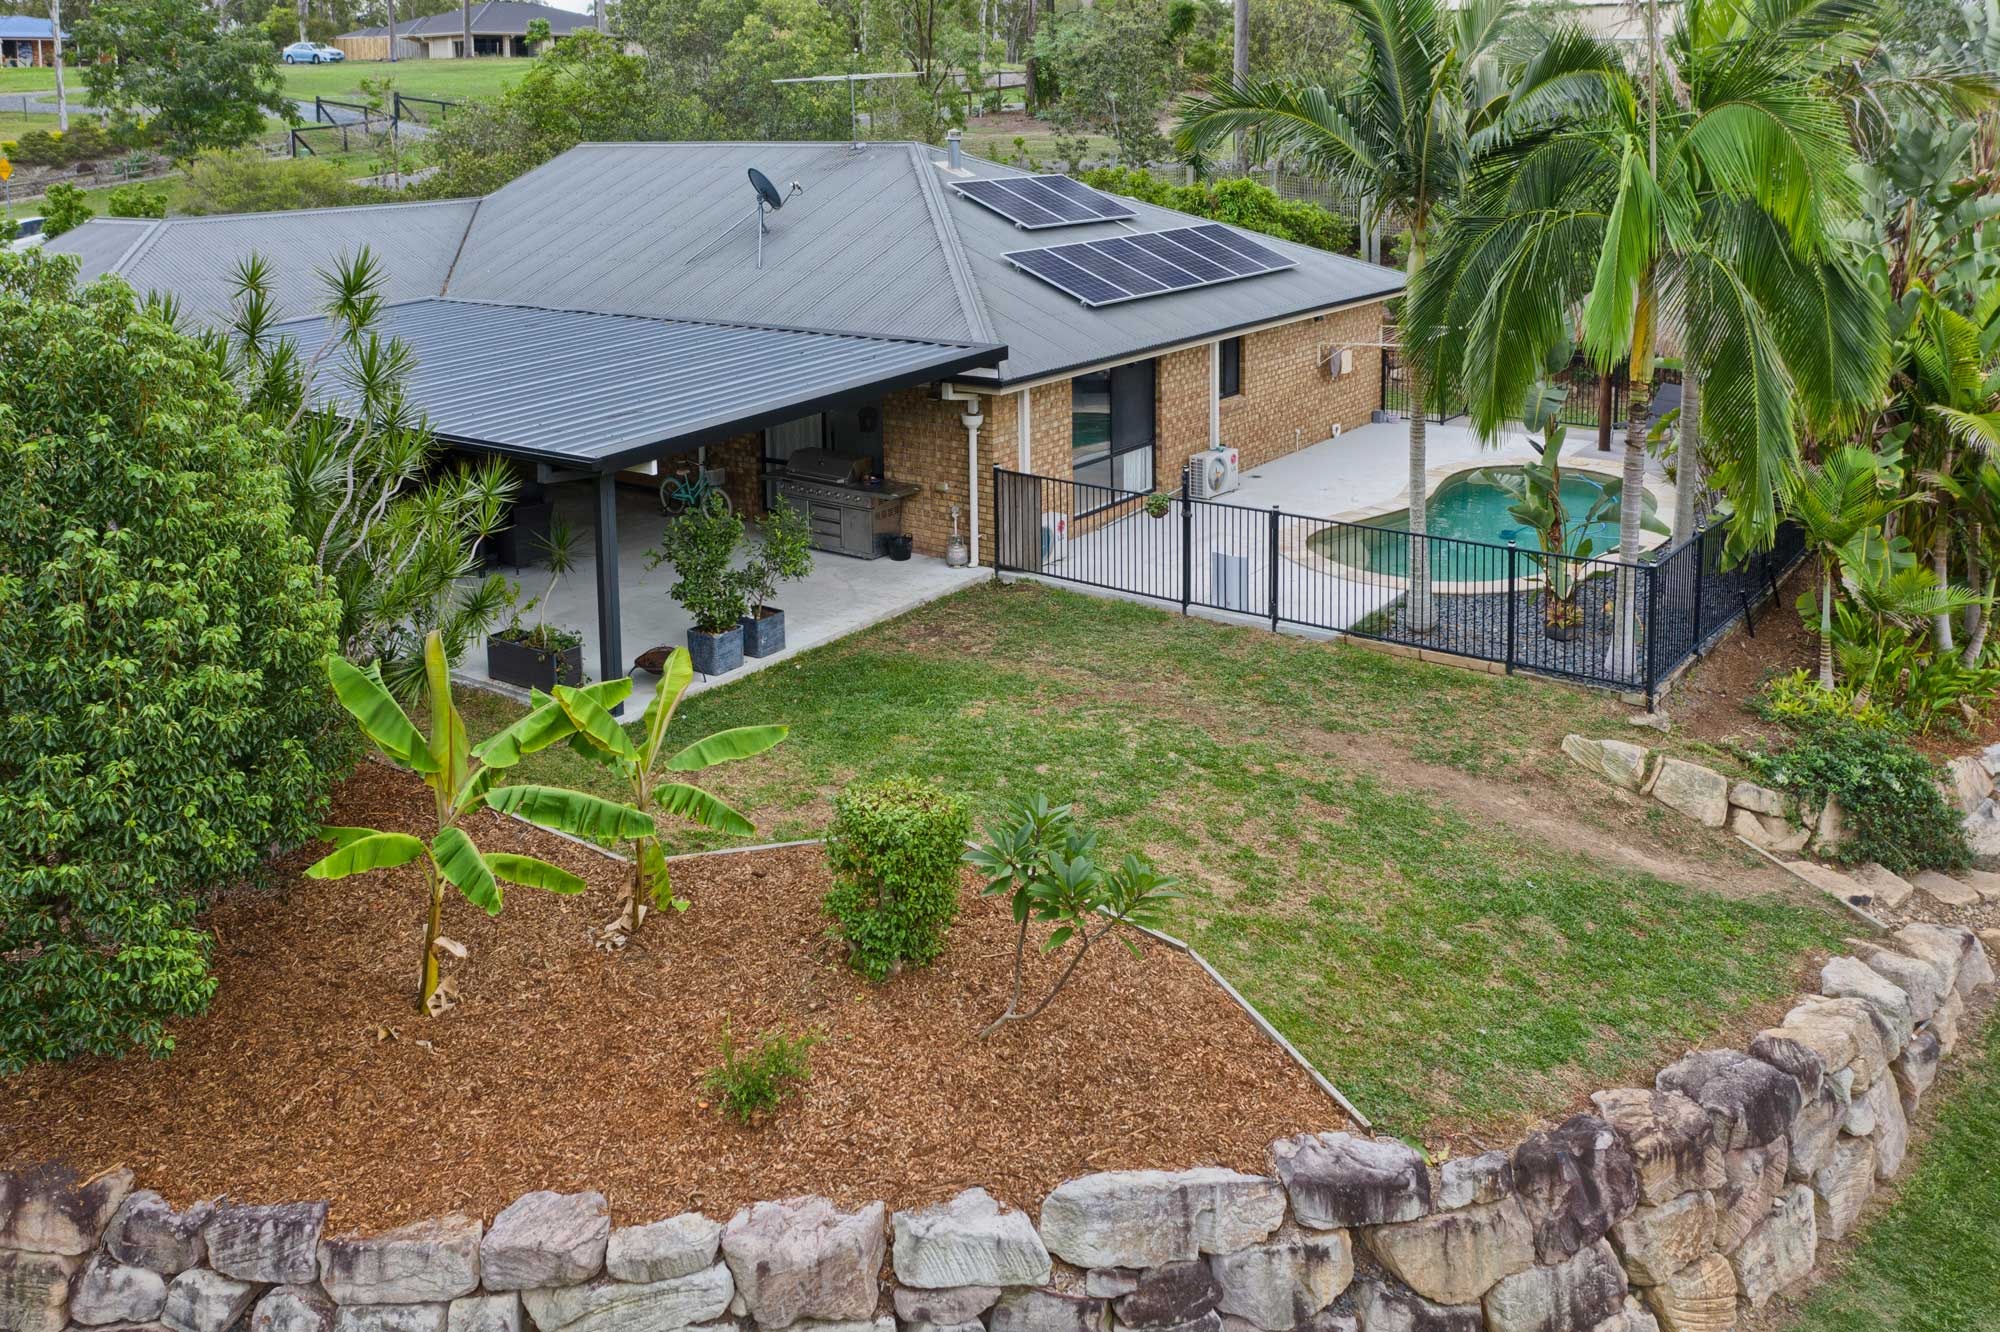 Drone photography at 152 Peppertree Drive Jimboomba - the main residence